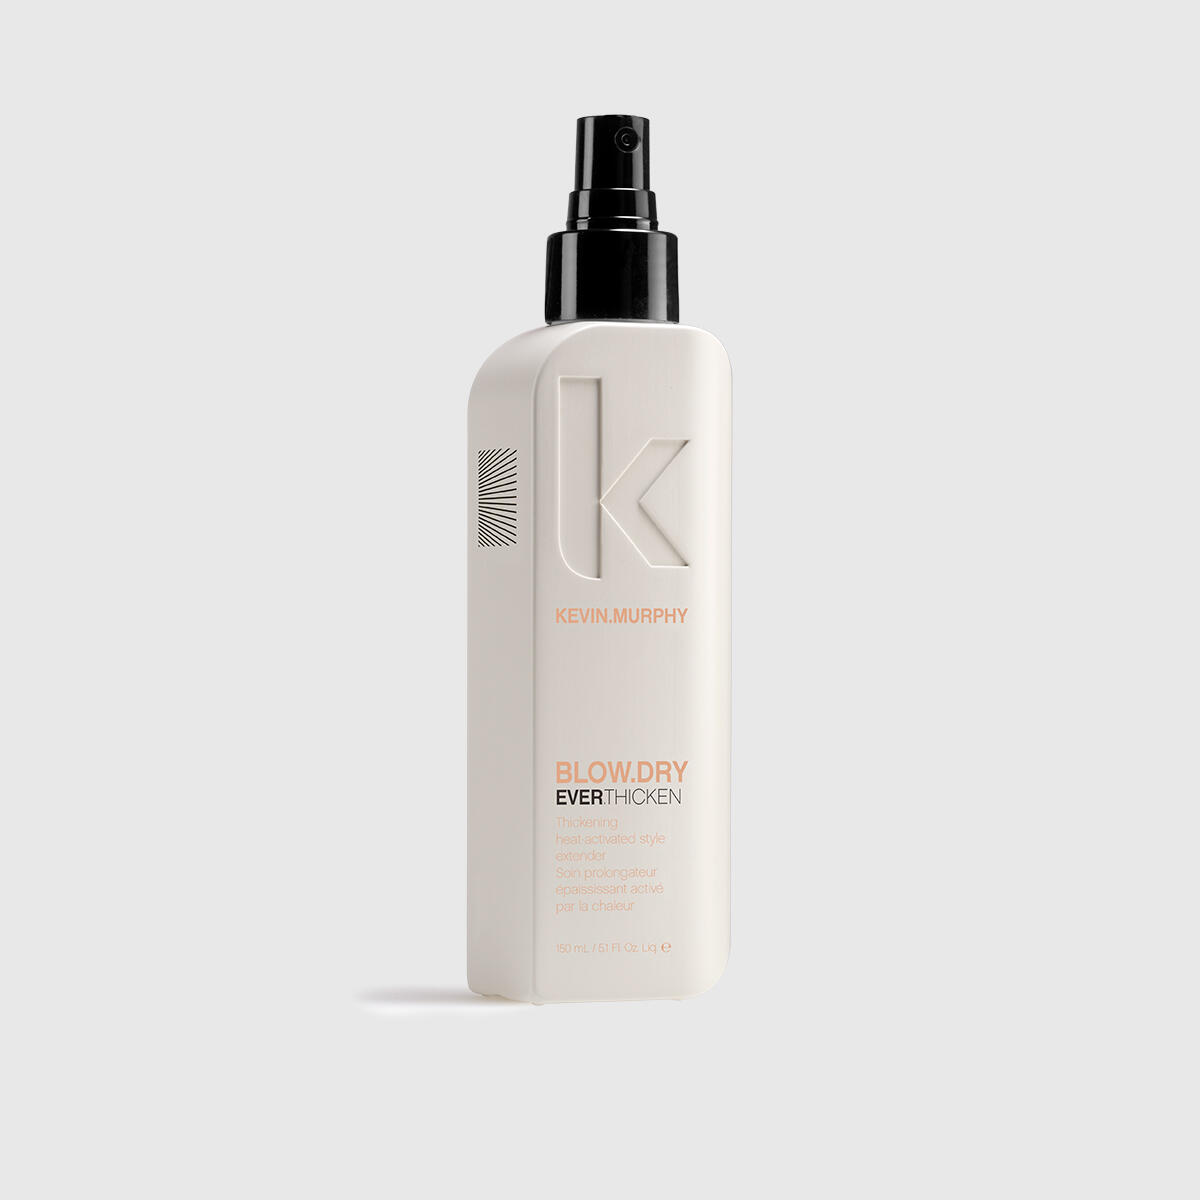 Kevin Murphy Blow Dry Ever Thicken null